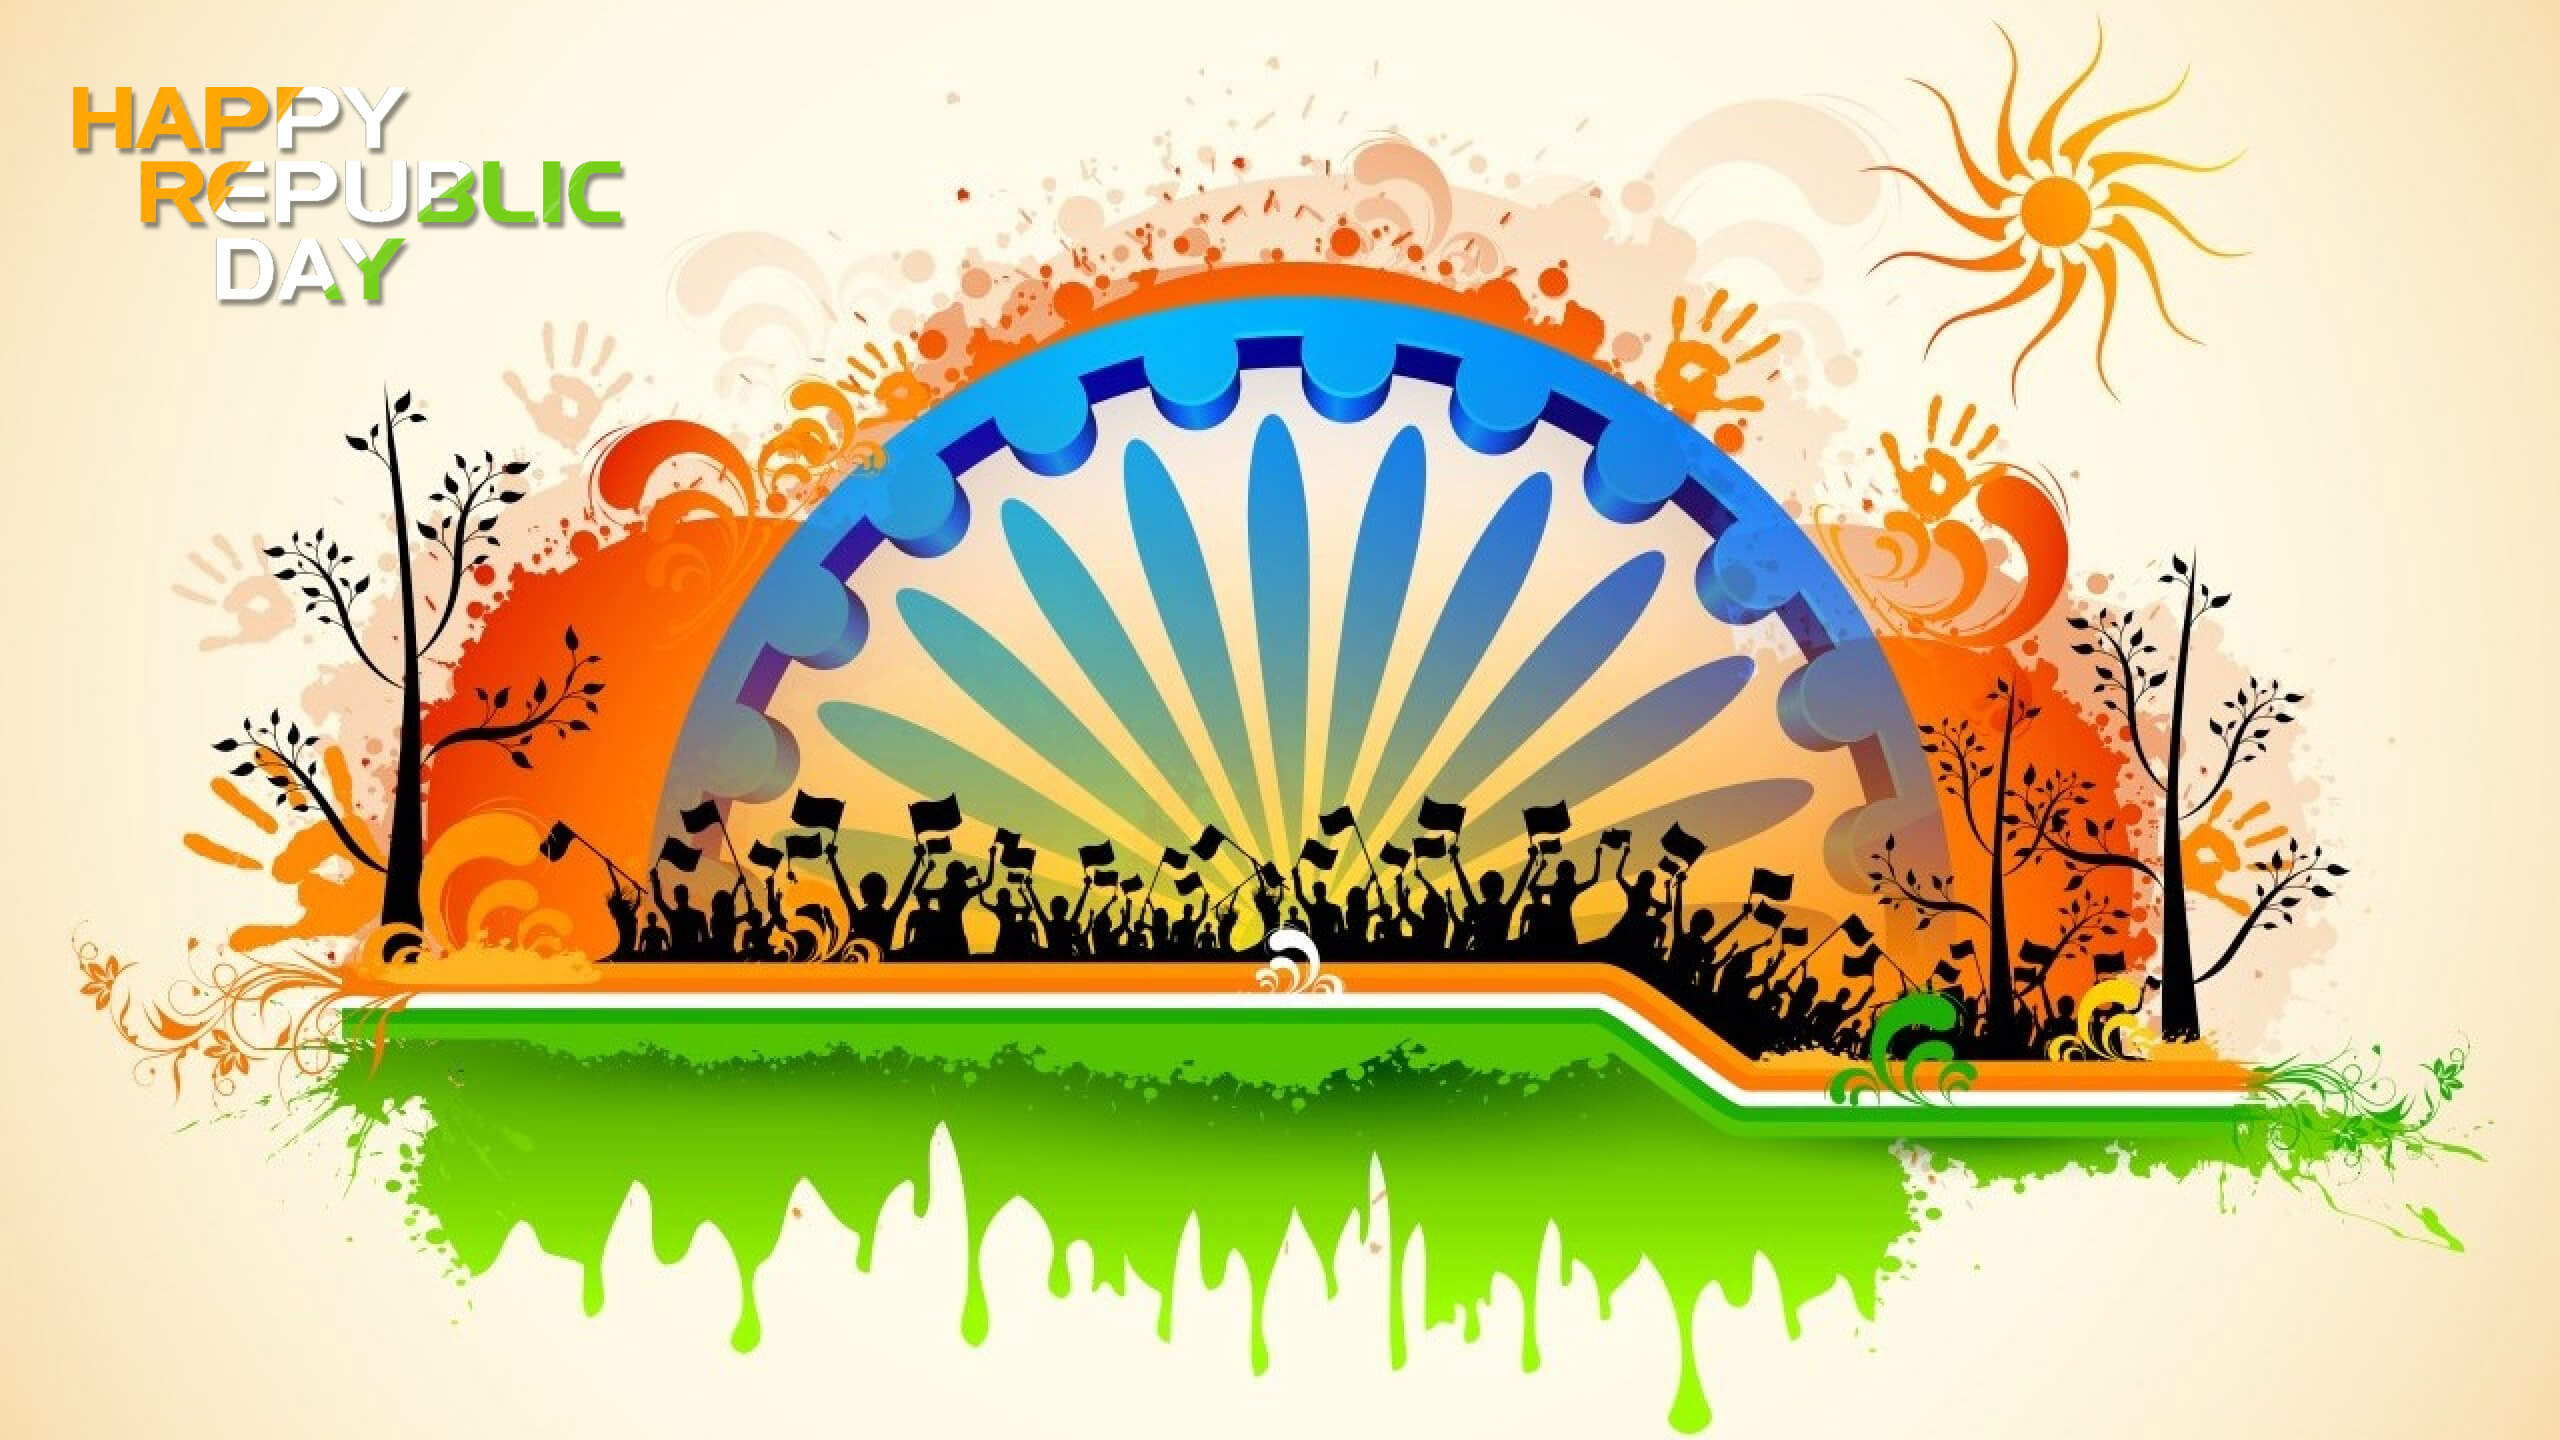 Republic day wallpapers free download happy republic day wishes greetings india 26th january hd background wallpaper m4hsunfo